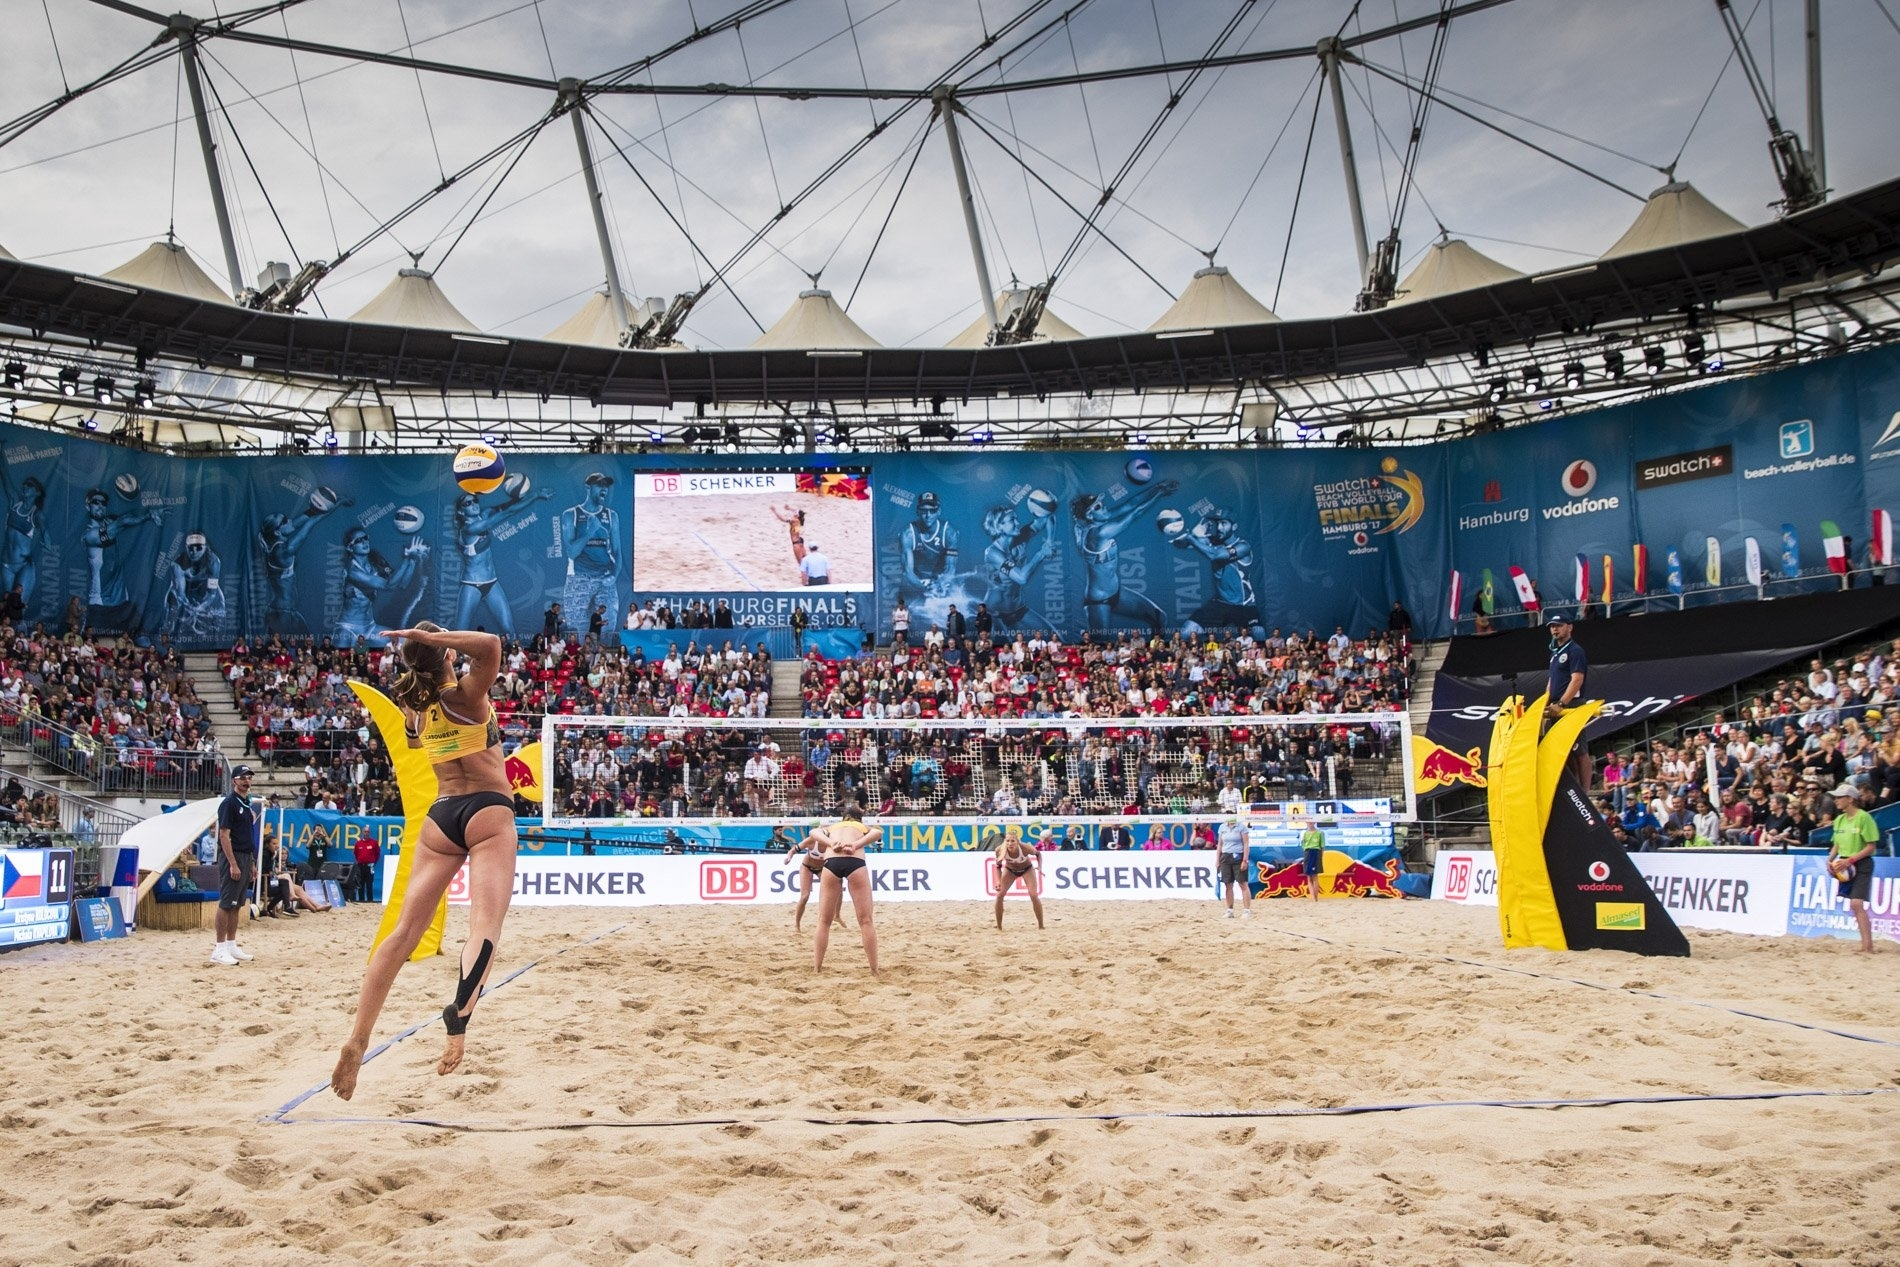 A packed crowd watched Julia and Chantal secure their first victory on home sand